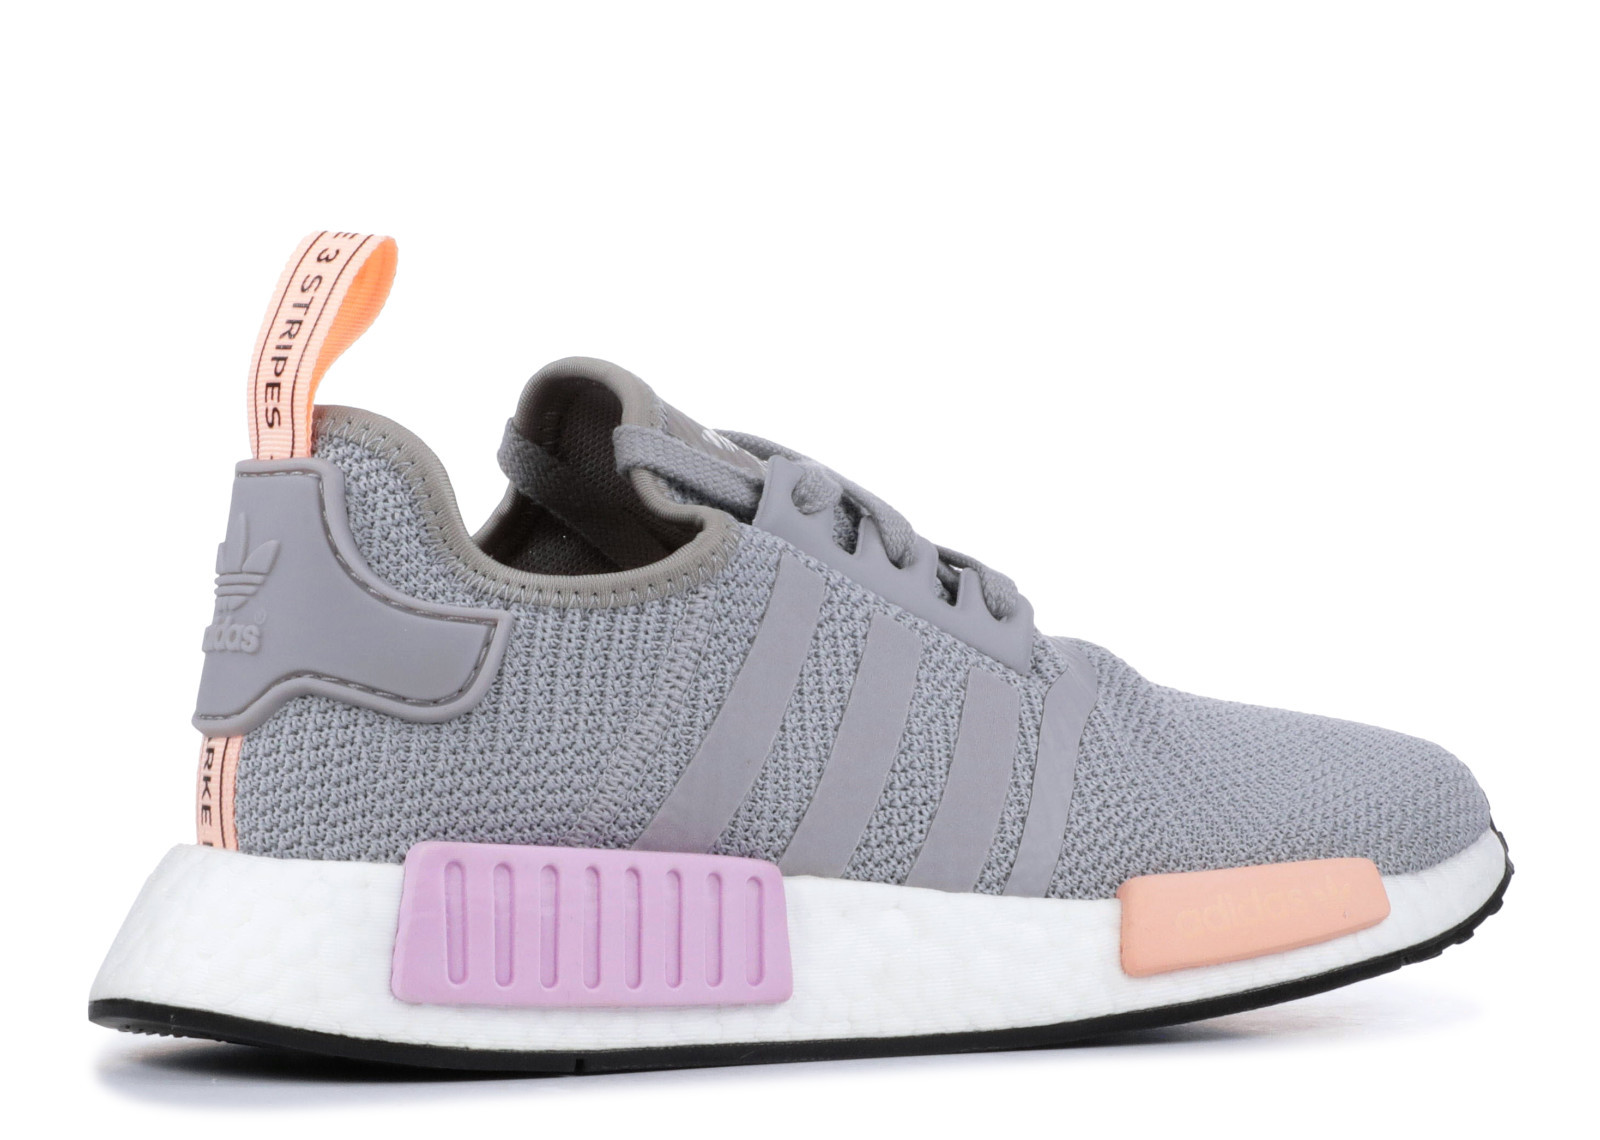 NMD R1 LIGHT GRANITE (W) image 3